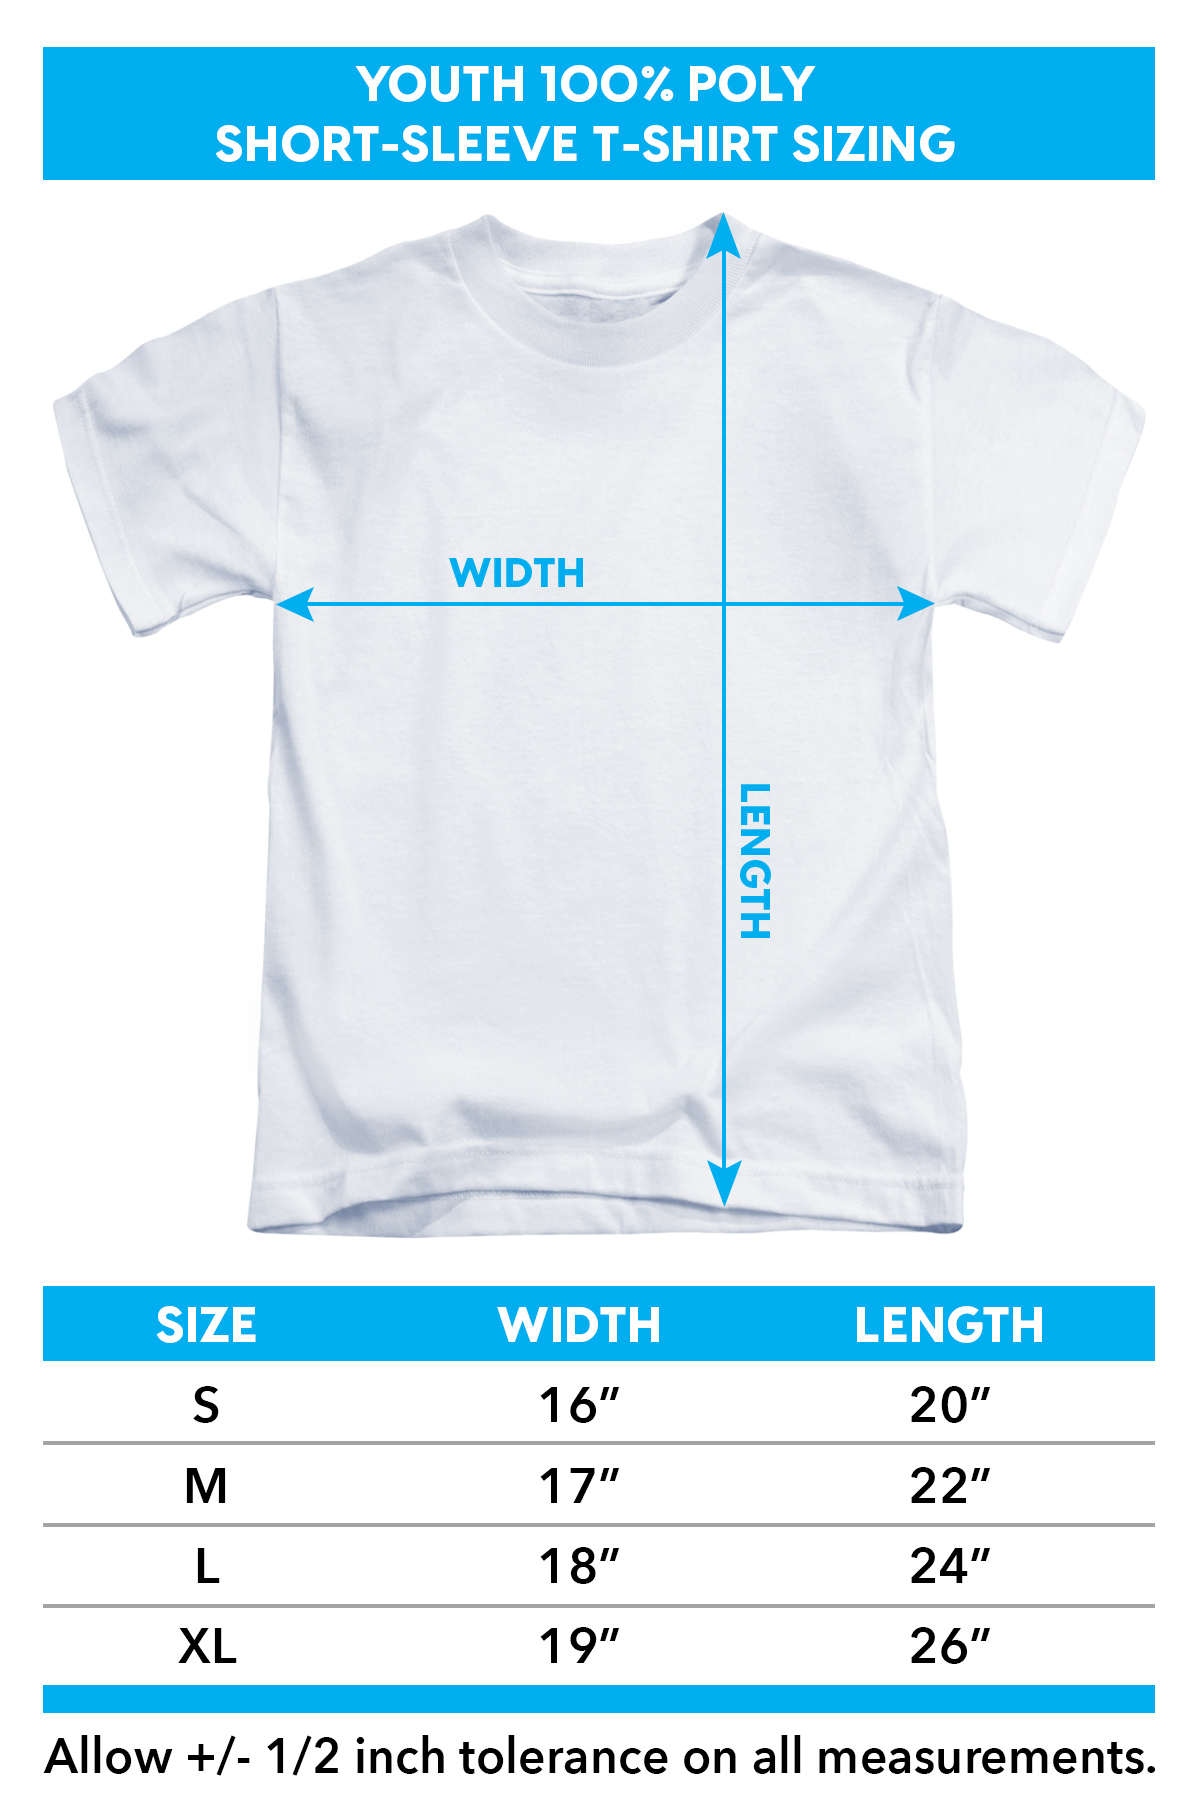 Sizing Chart for Falling Skies T-Shirt - Sublimated Harness